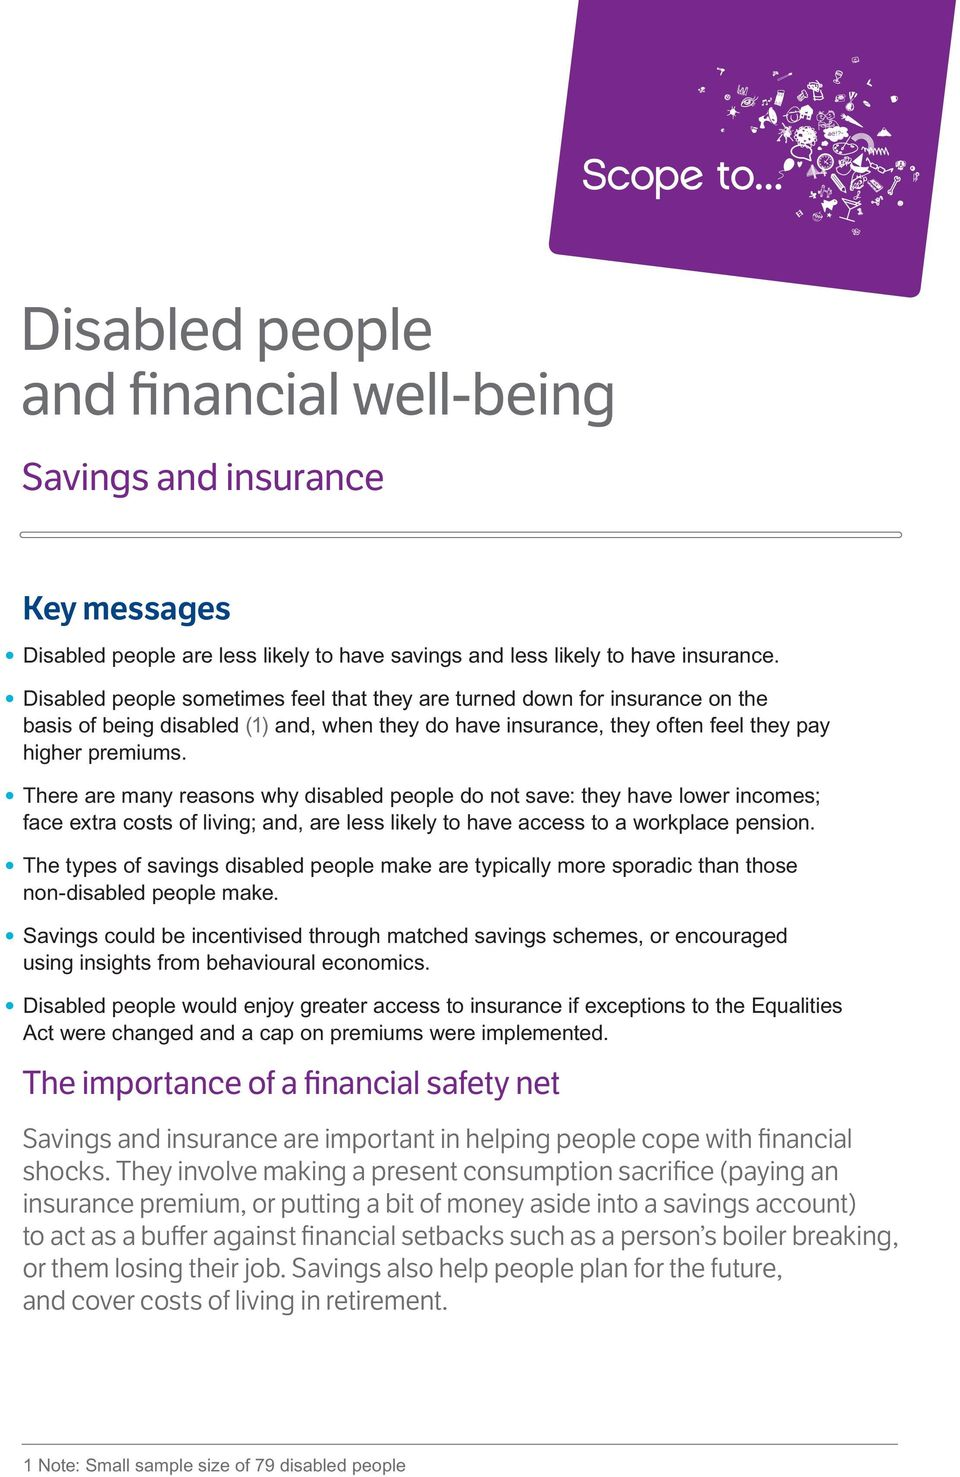 There are many reasons why disabled people do not save: they have lower incomes; face extra costs of living; and, are less likely to have access to a workplace pension.